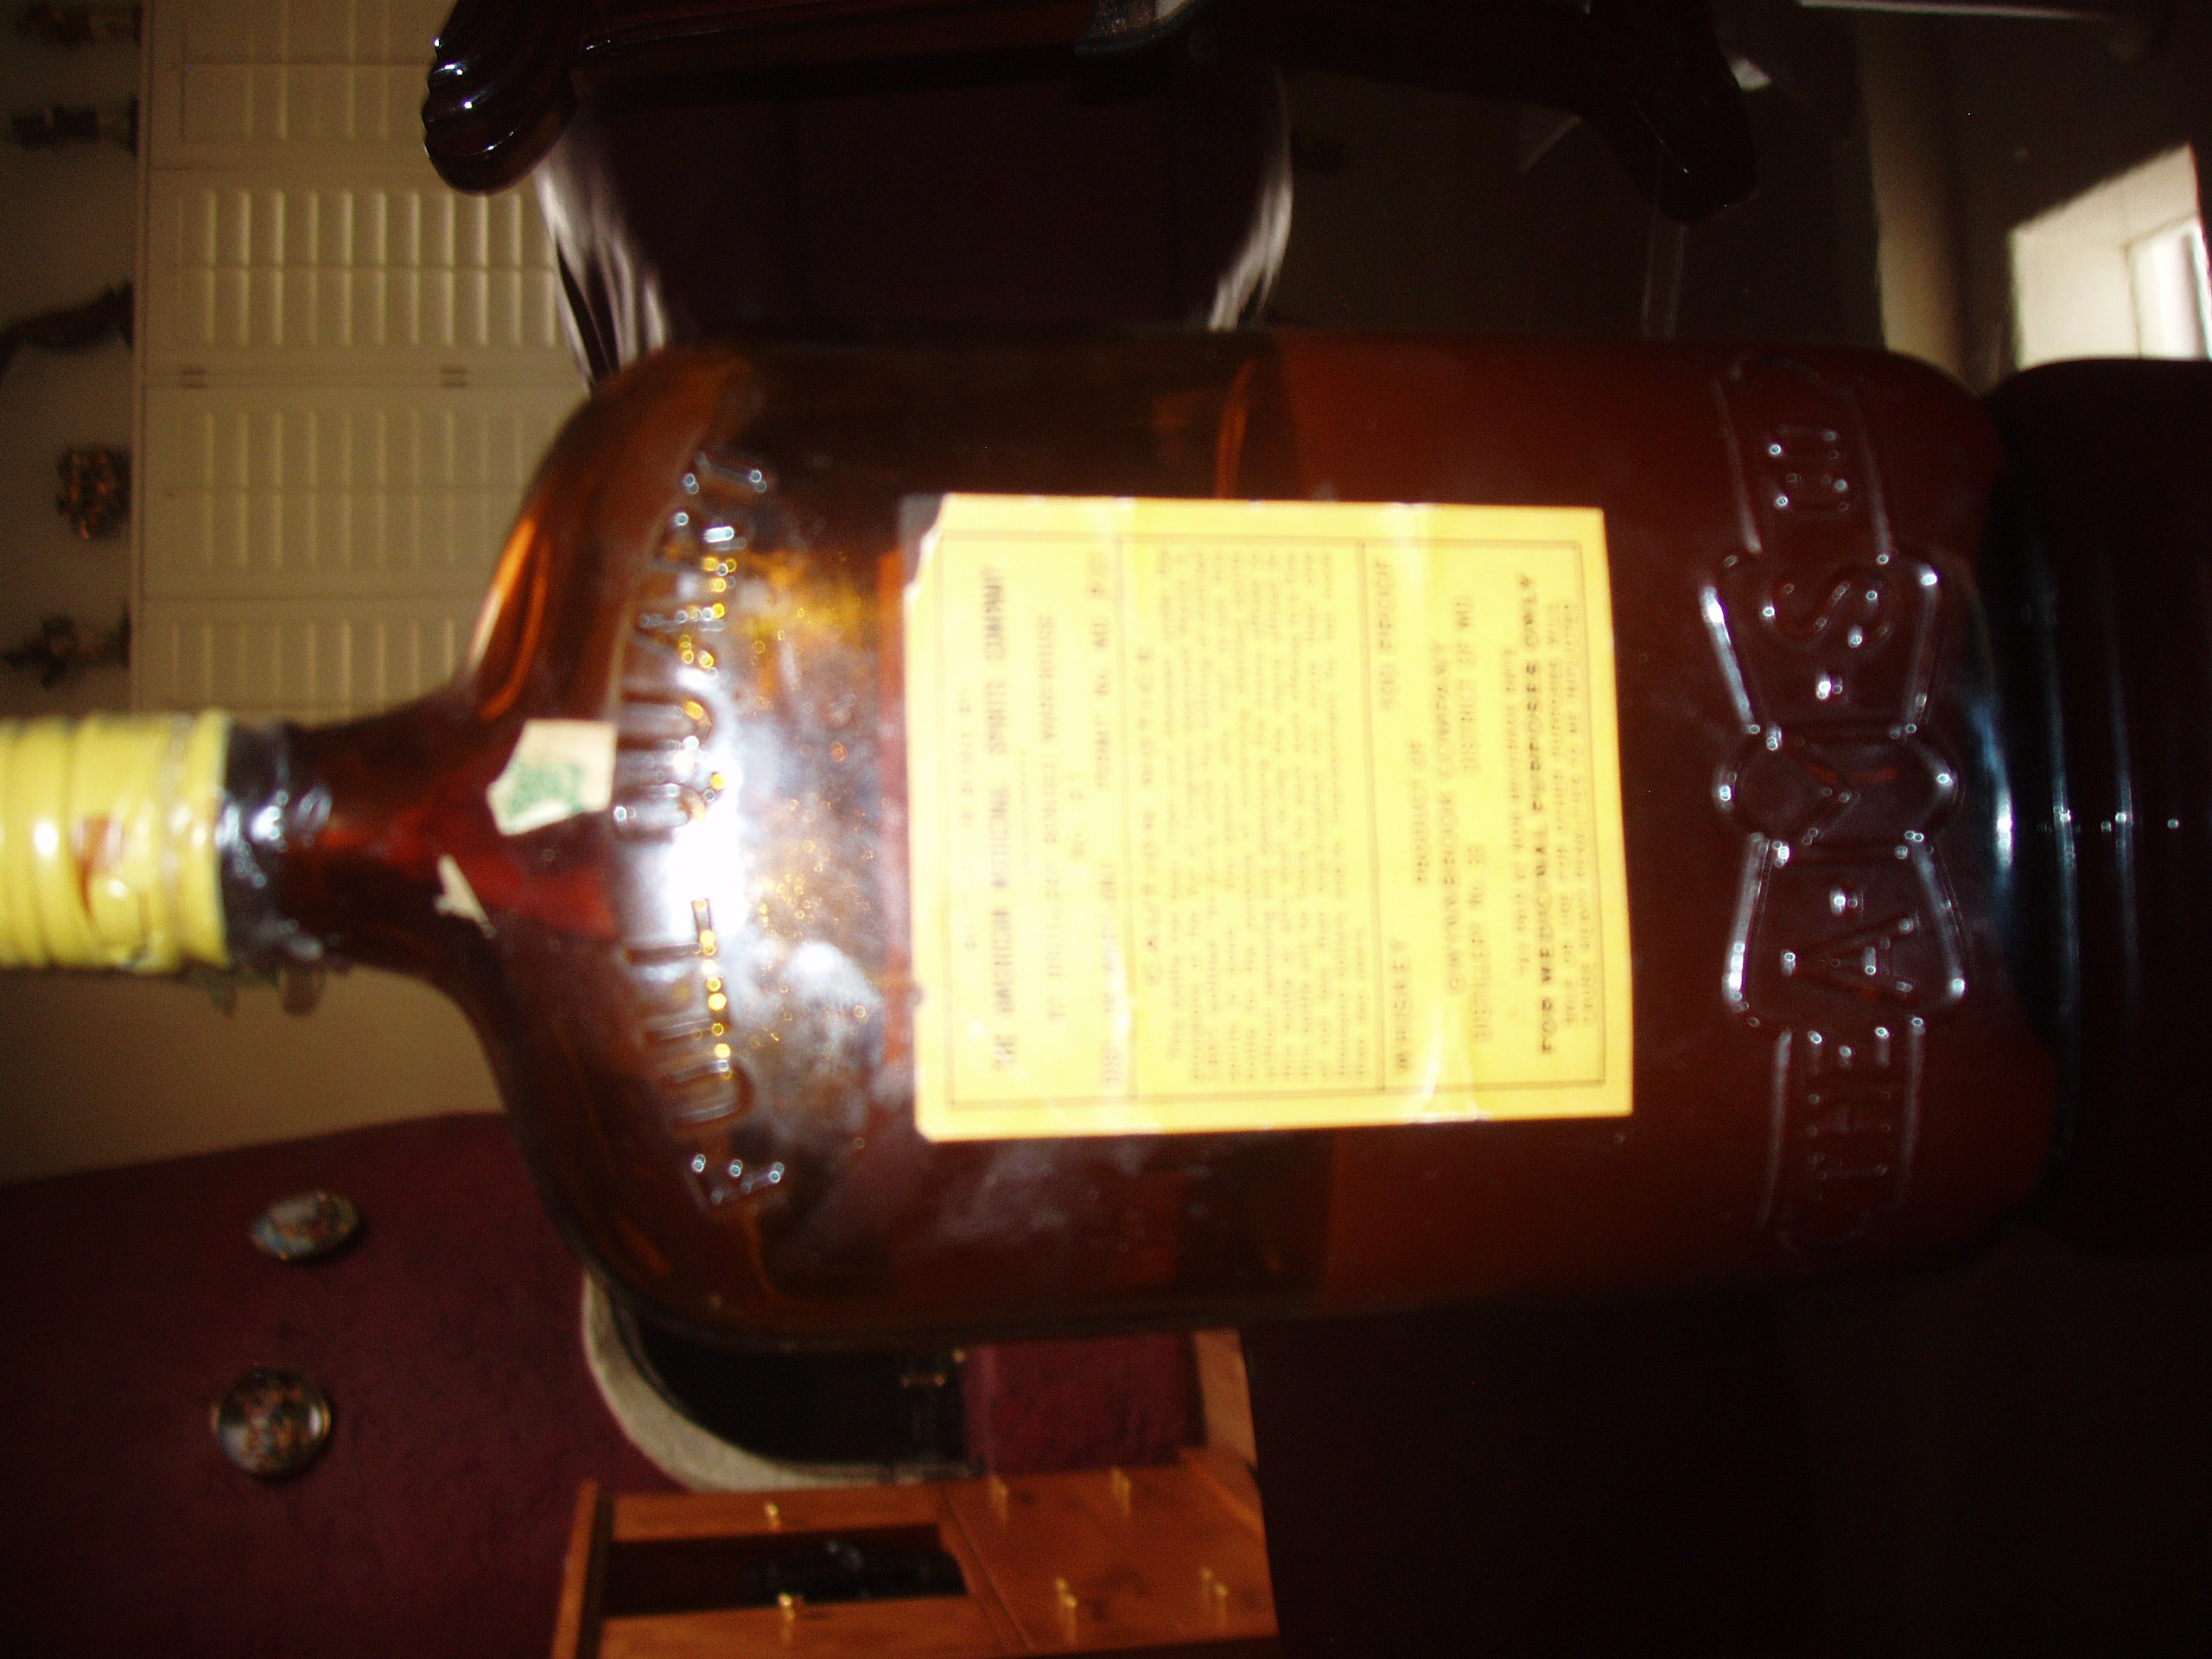 whiskey bottle 022.jpg